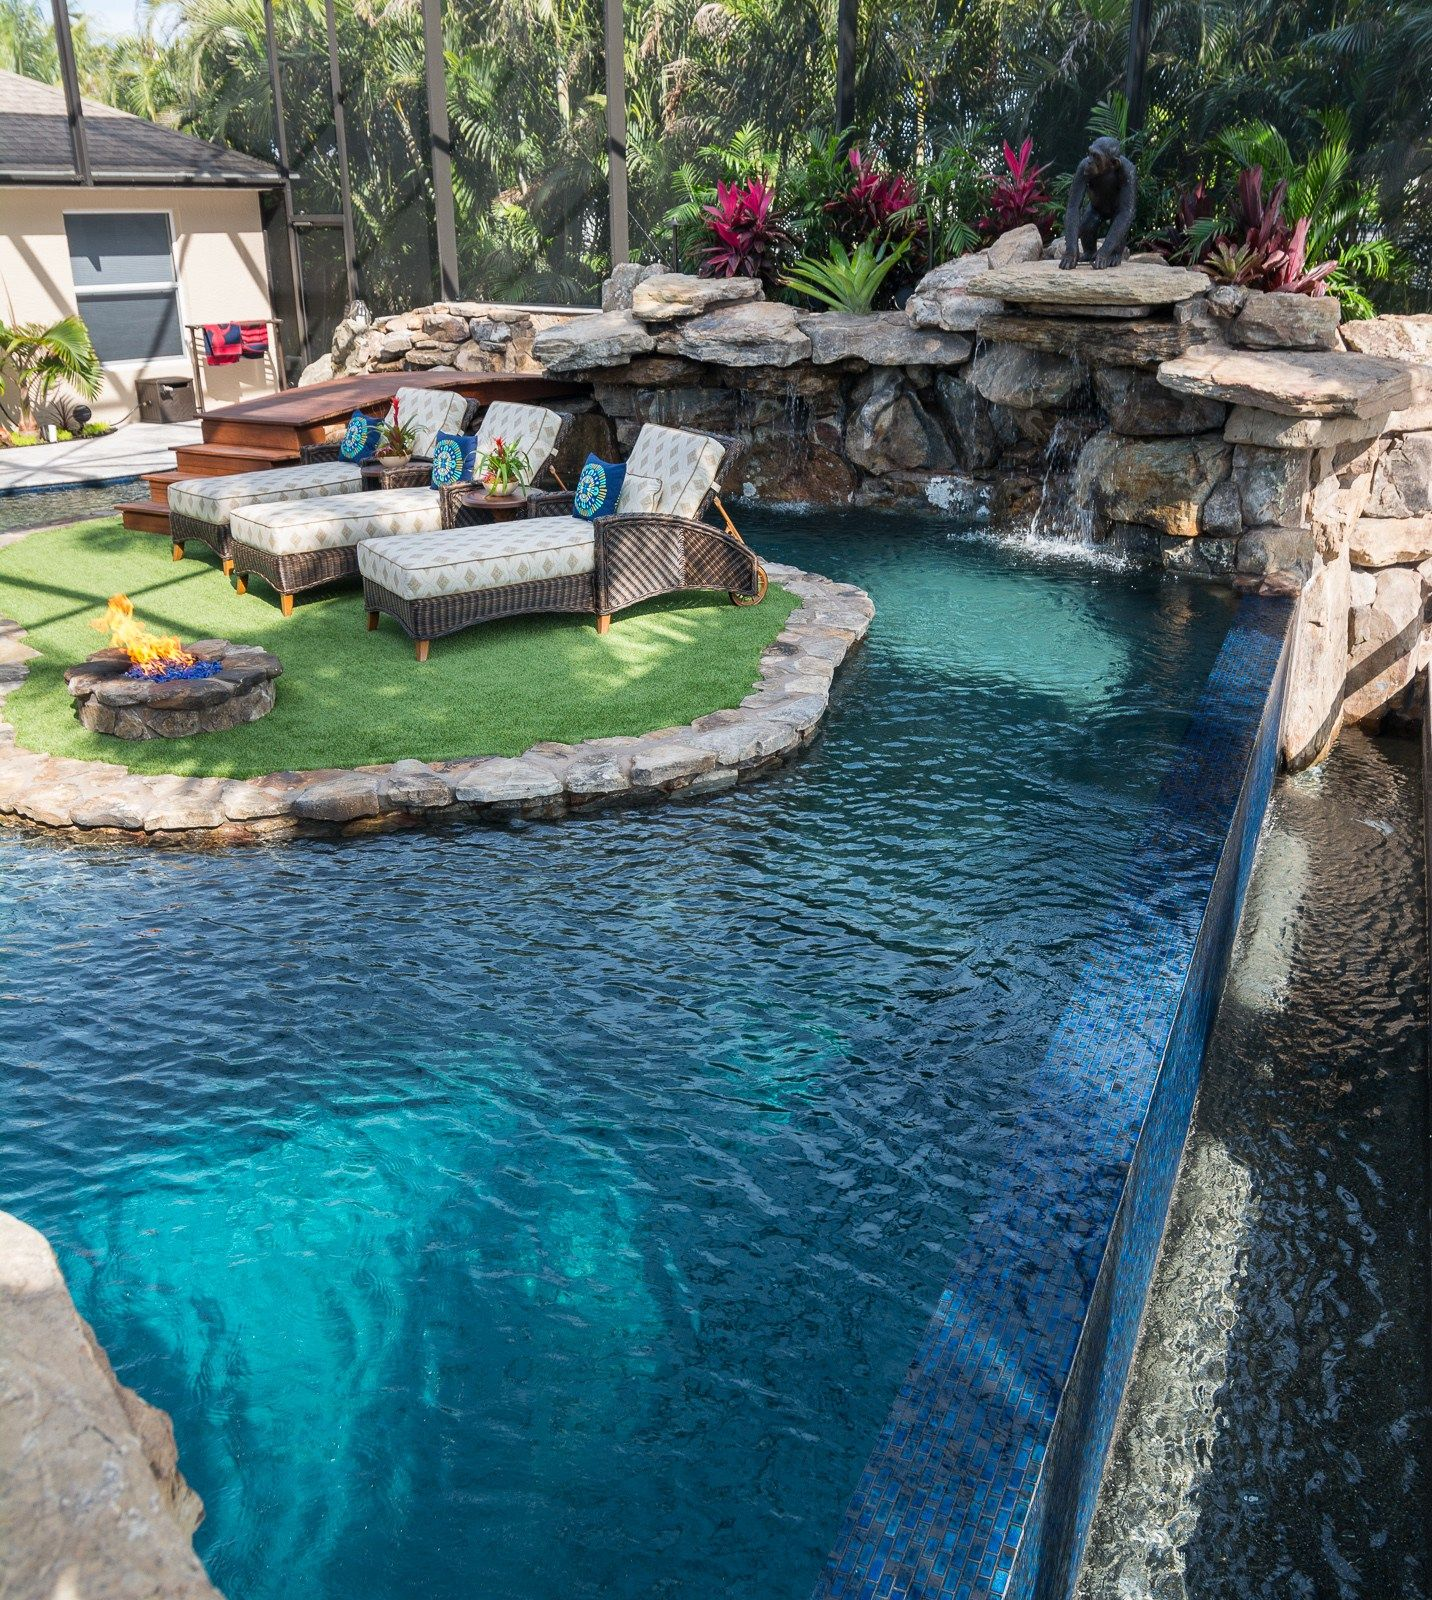 Lucas lagoons custom pool on pine island infinity edge for Custom swimming pool designs